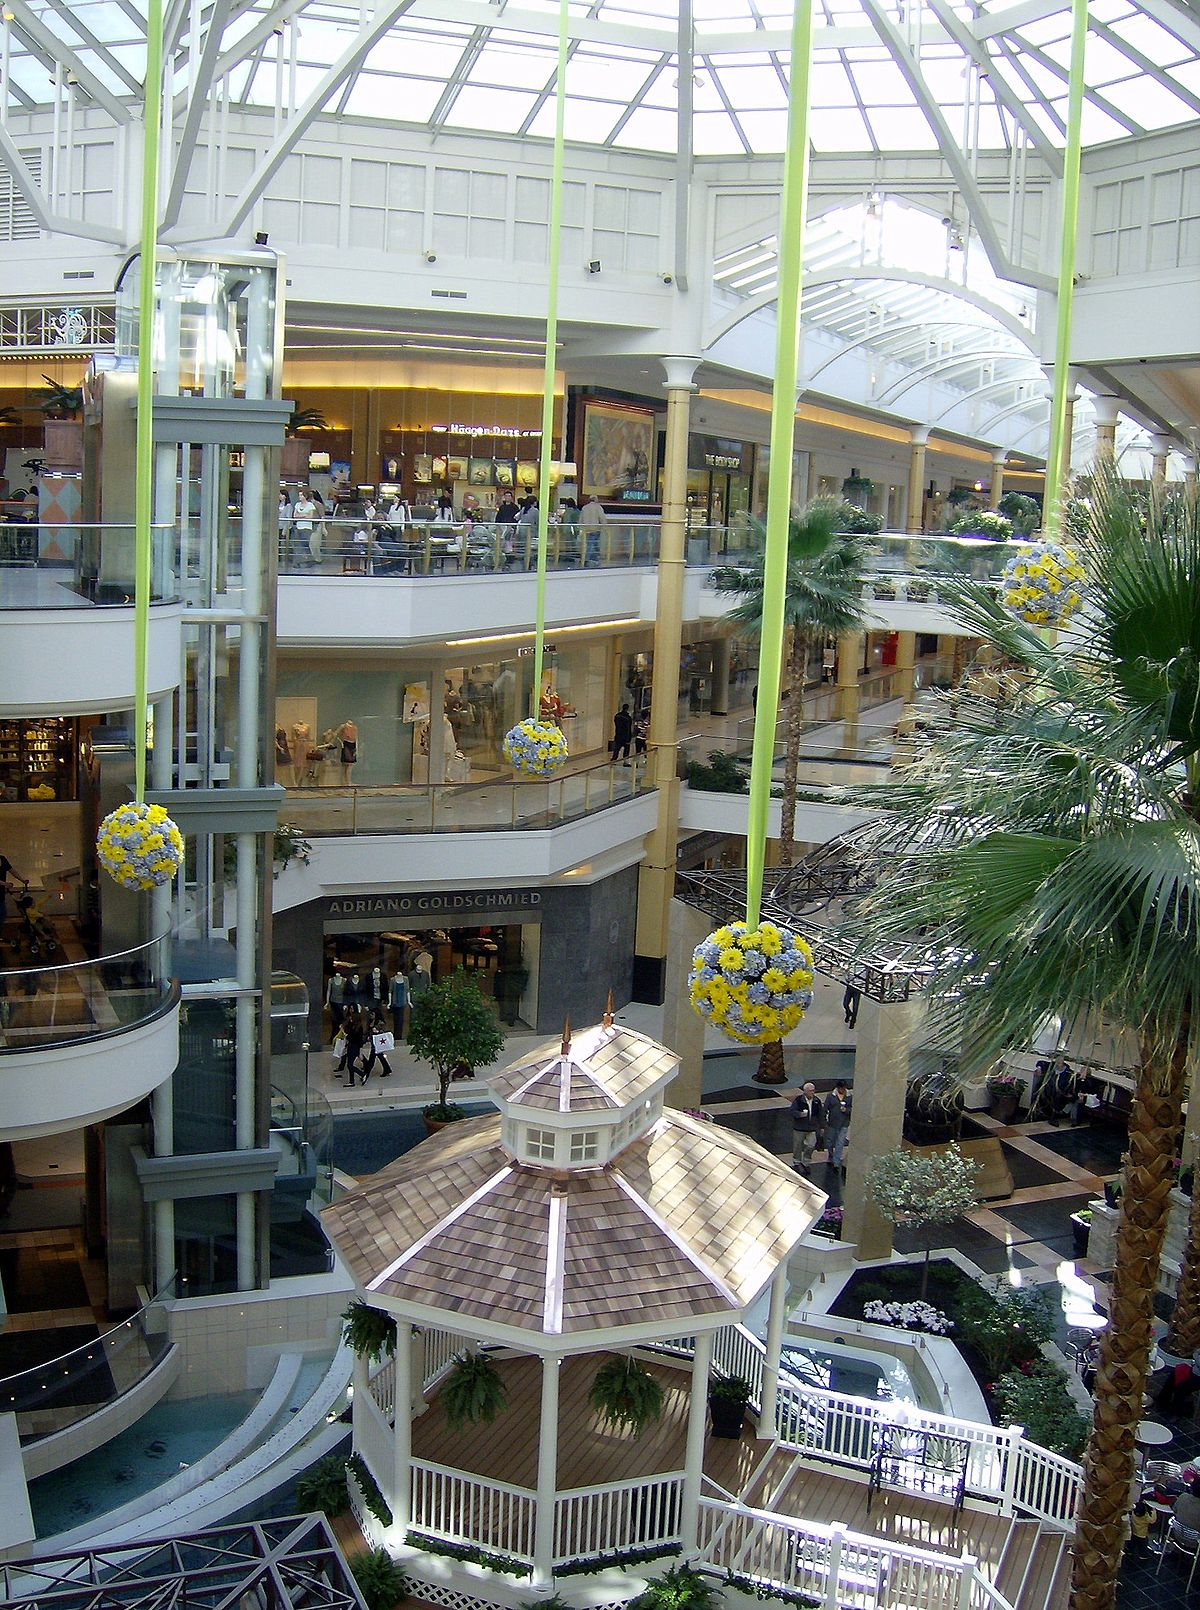 Oakland Mall is a super regional shopping center in Troy, MI with a family friendly atmosphere and a wide variety of stores.